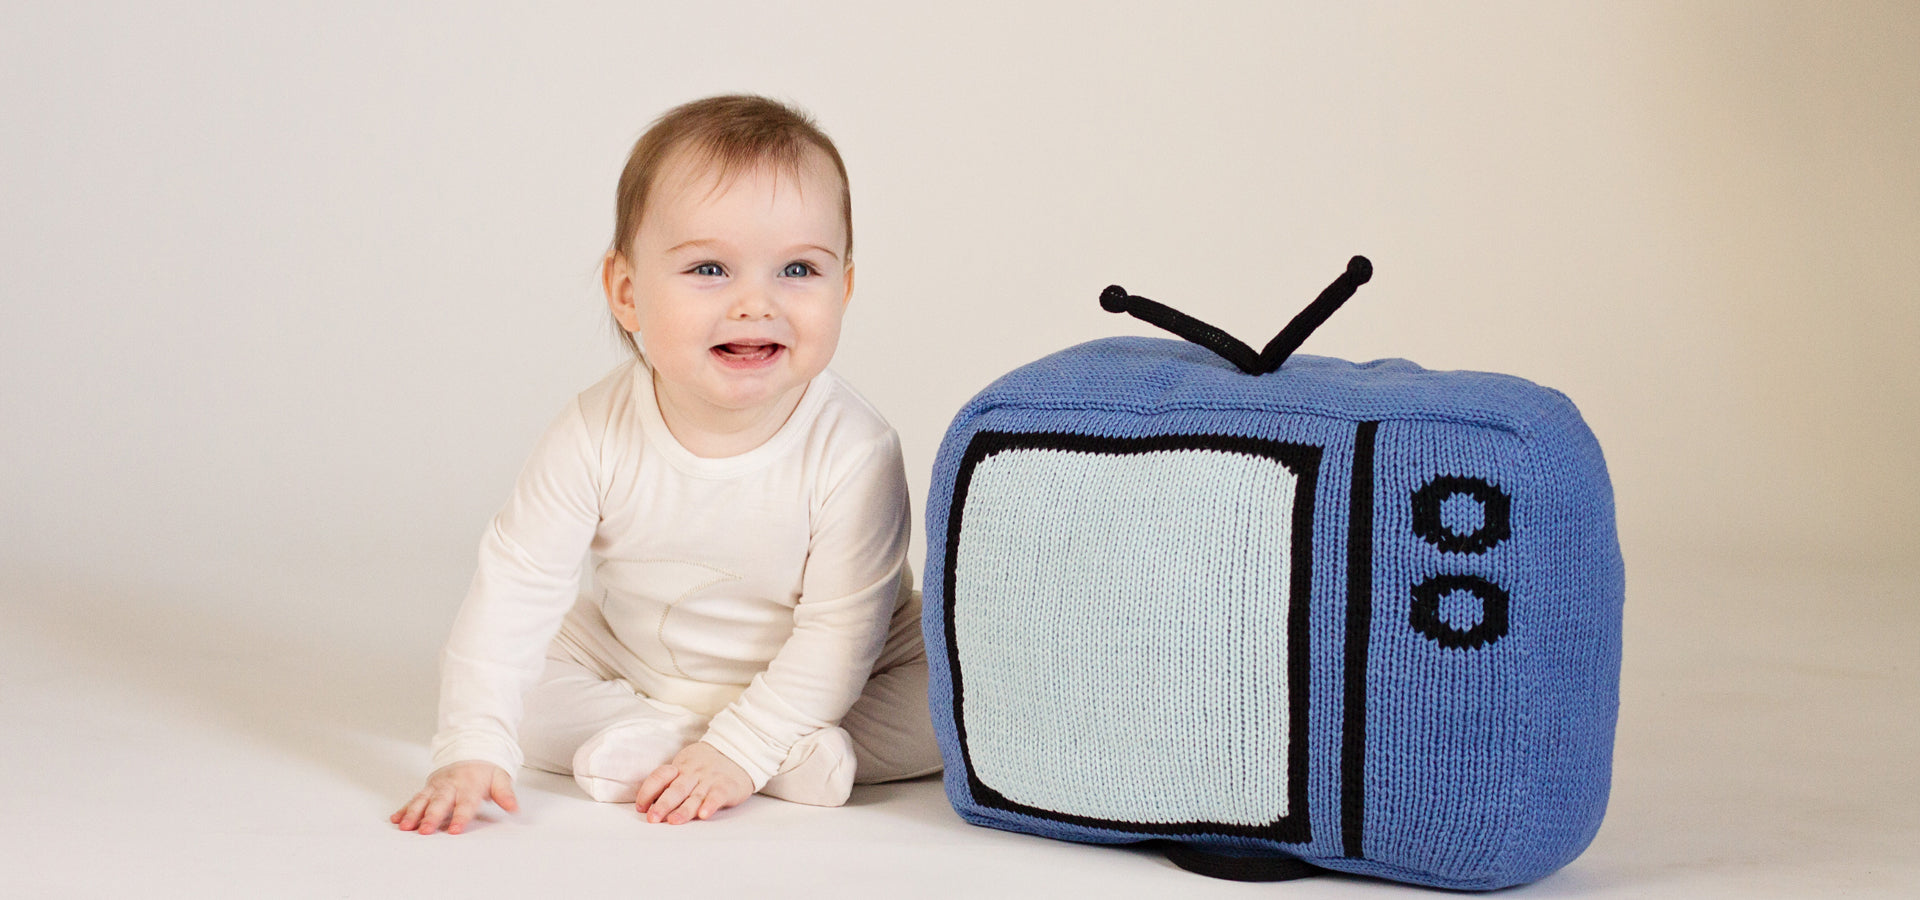 TV Decorative Pillow with Antenna